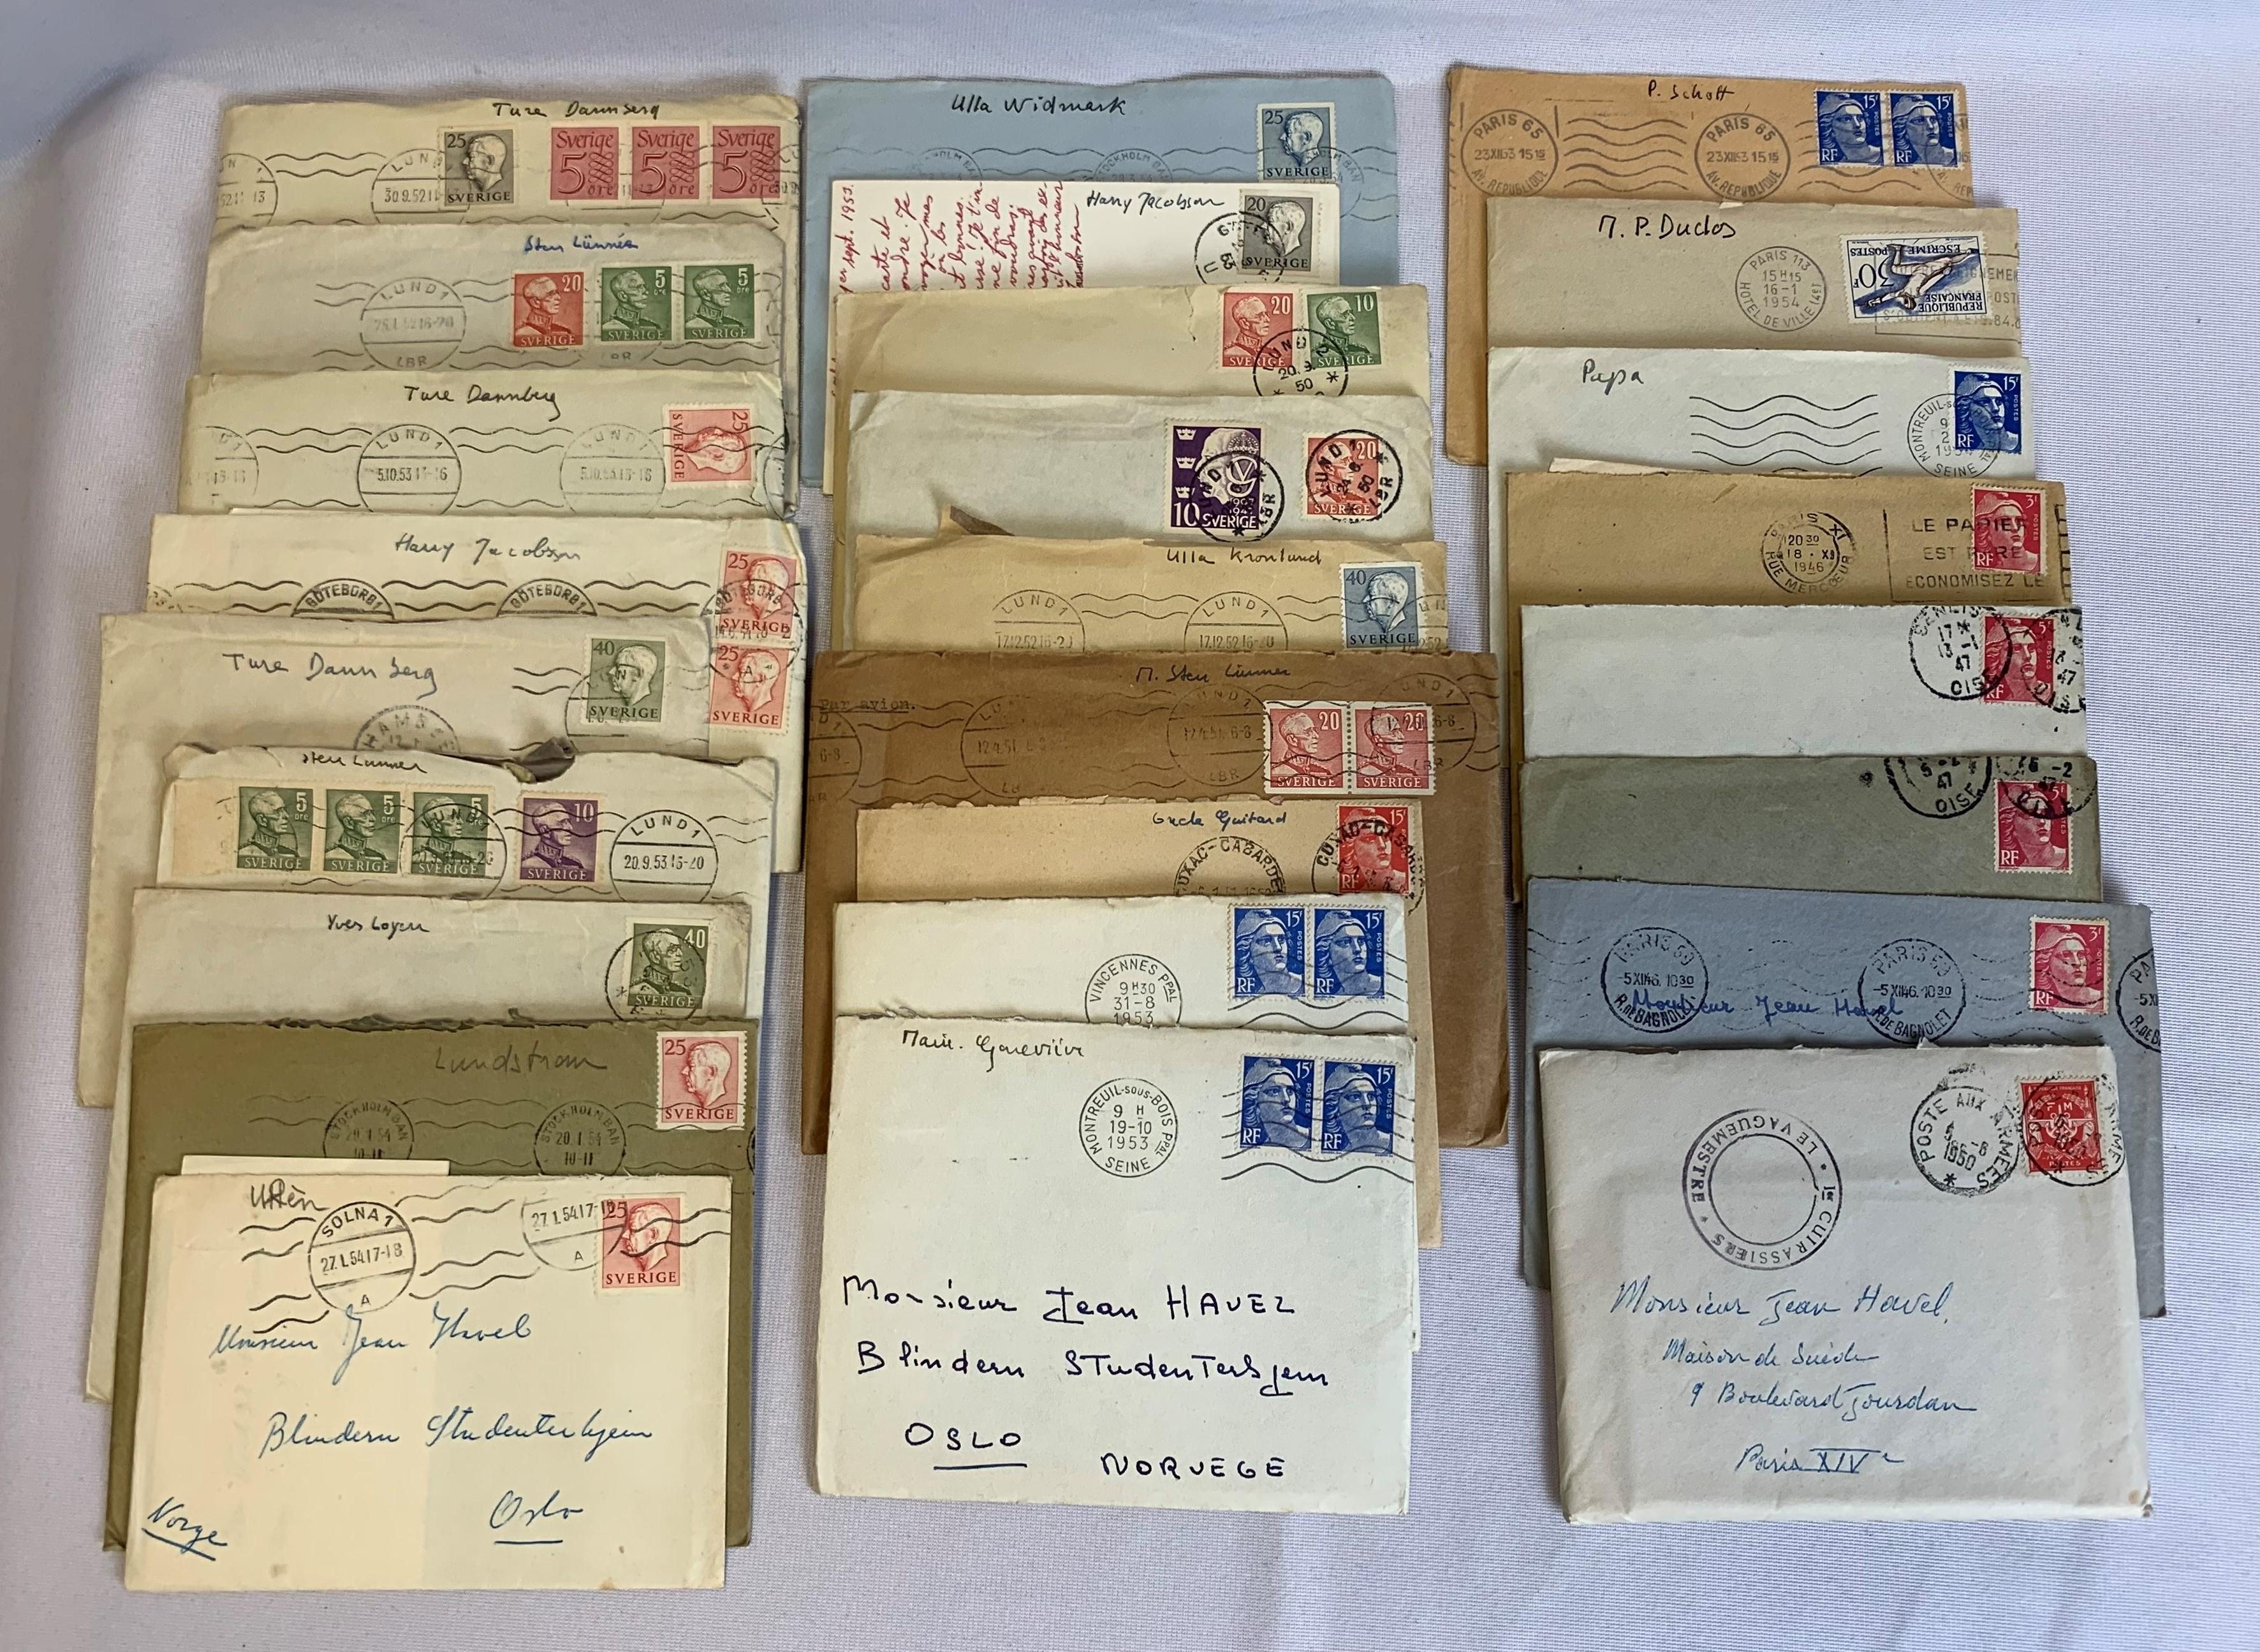 France and Sweden Stamp Covers and Cards